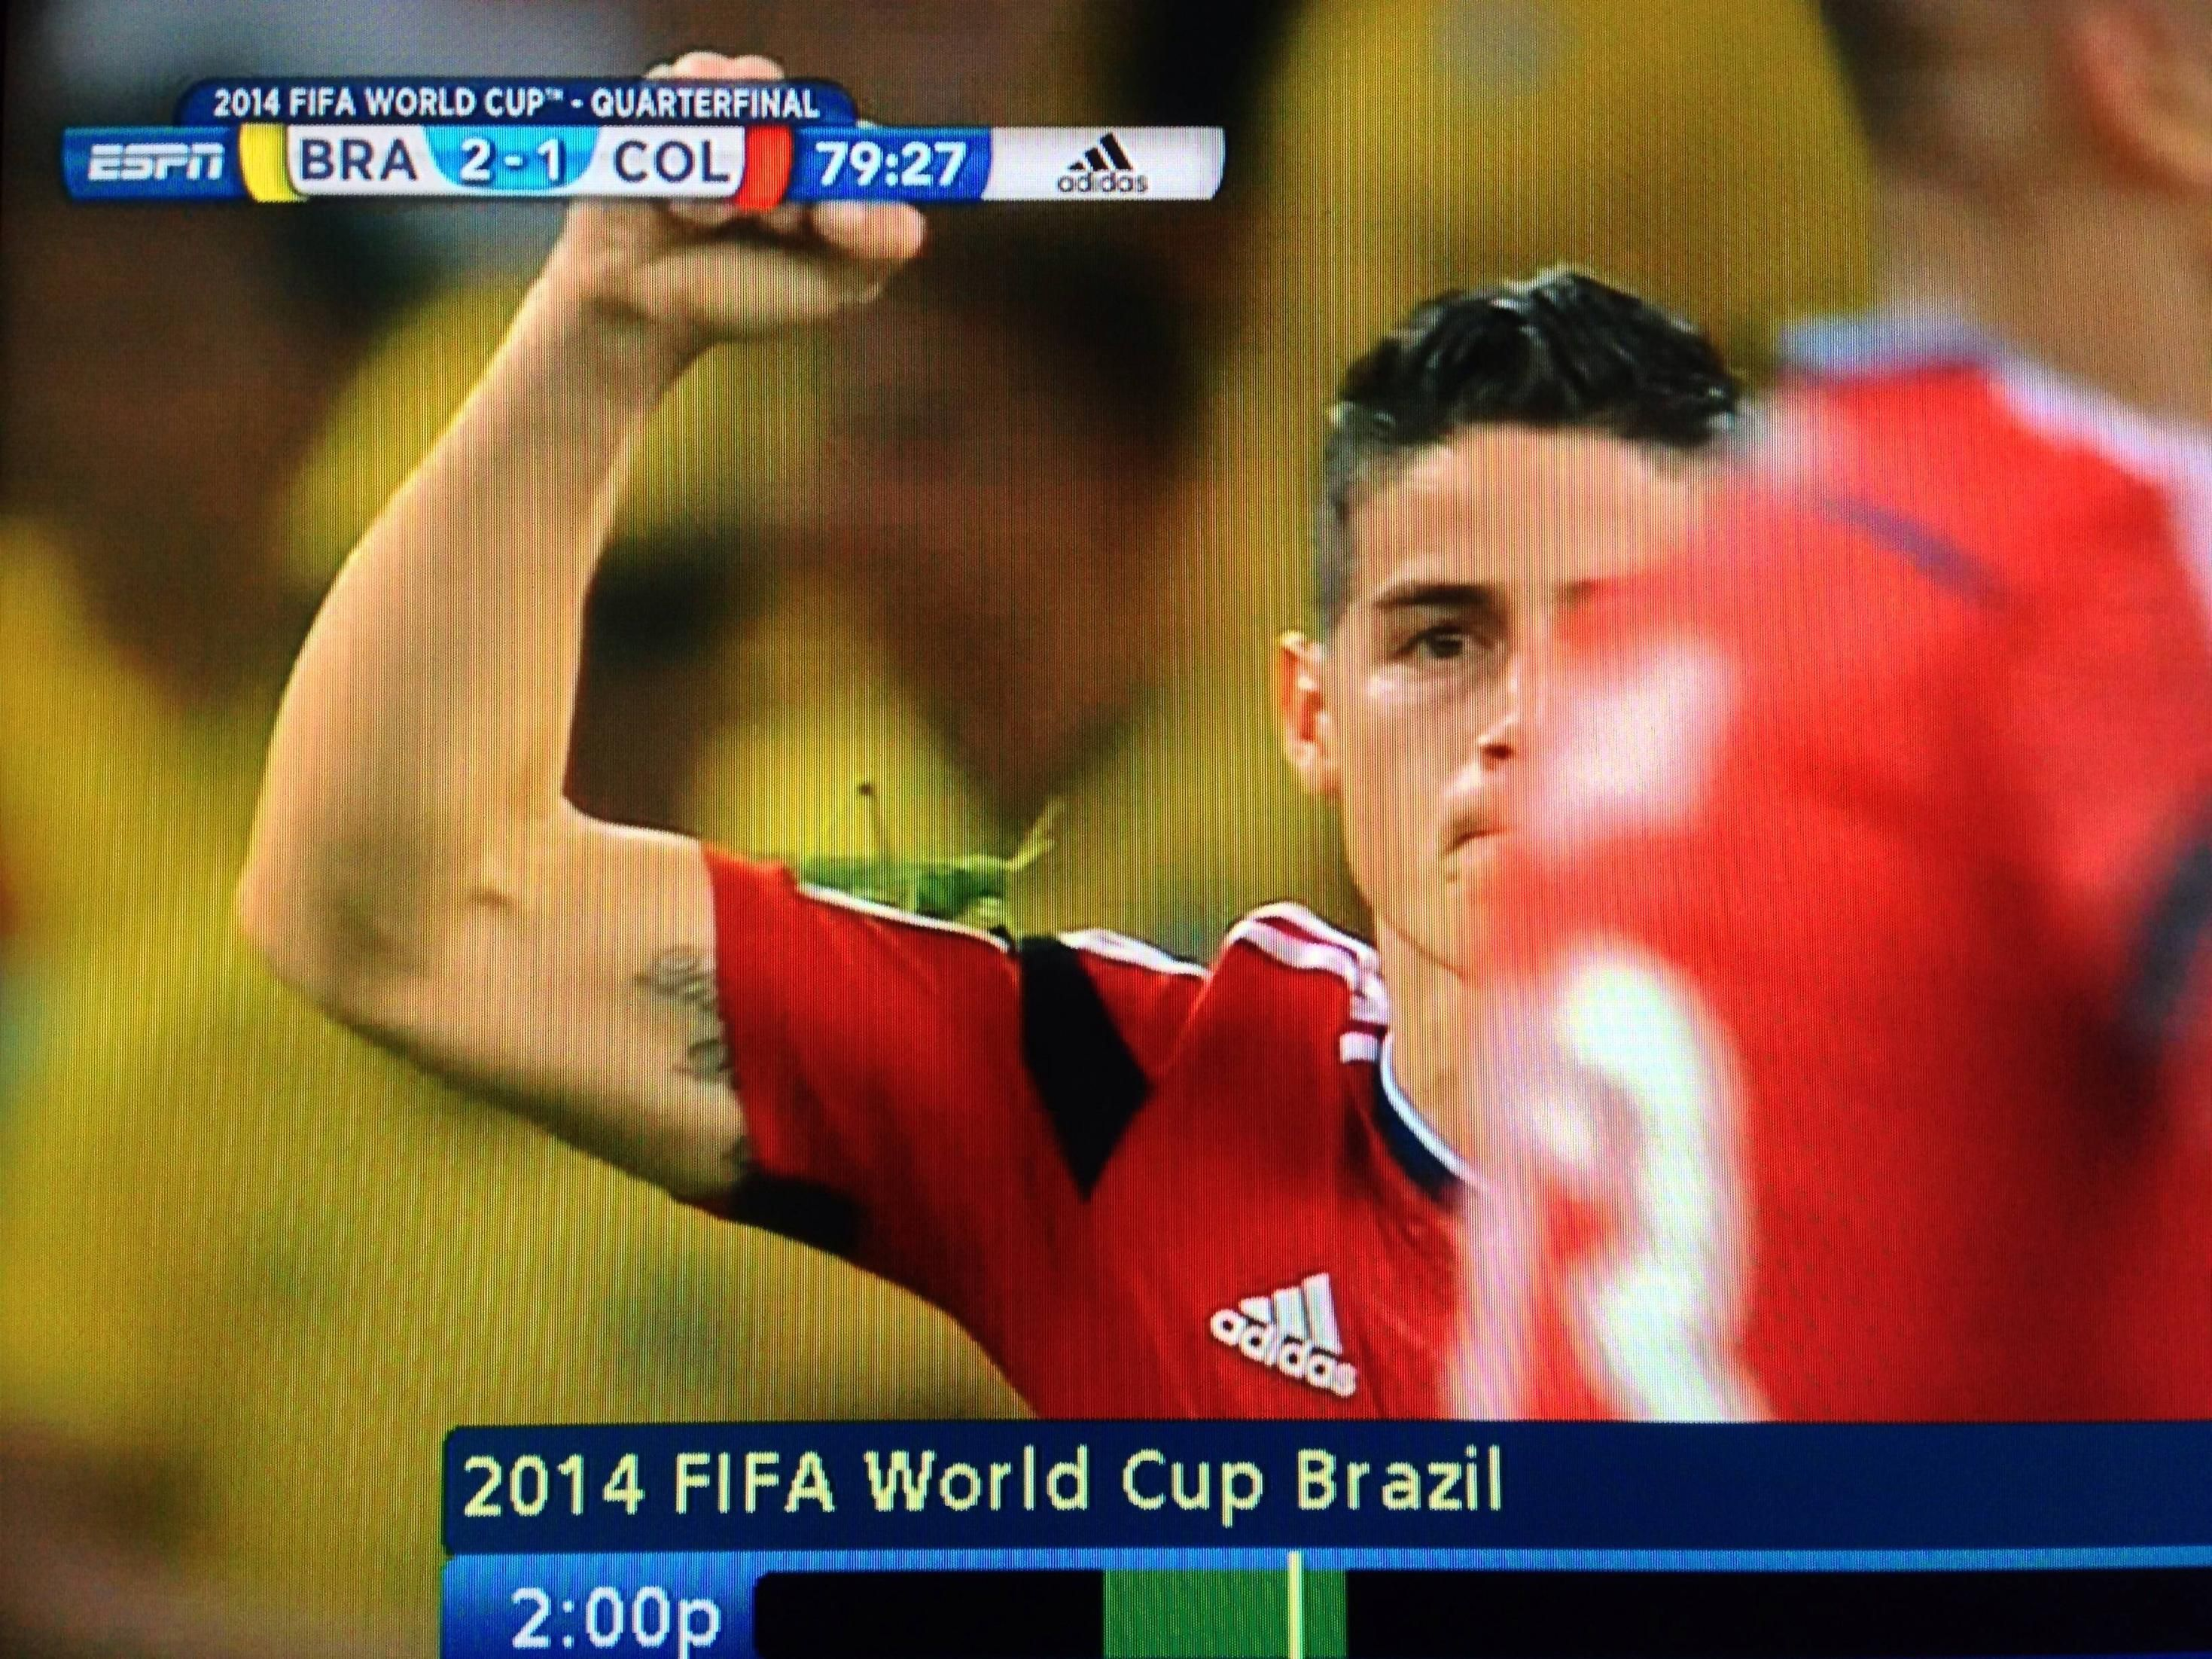 Did anyone notice the gigantic bug on James' arm after he scored against Brazil?